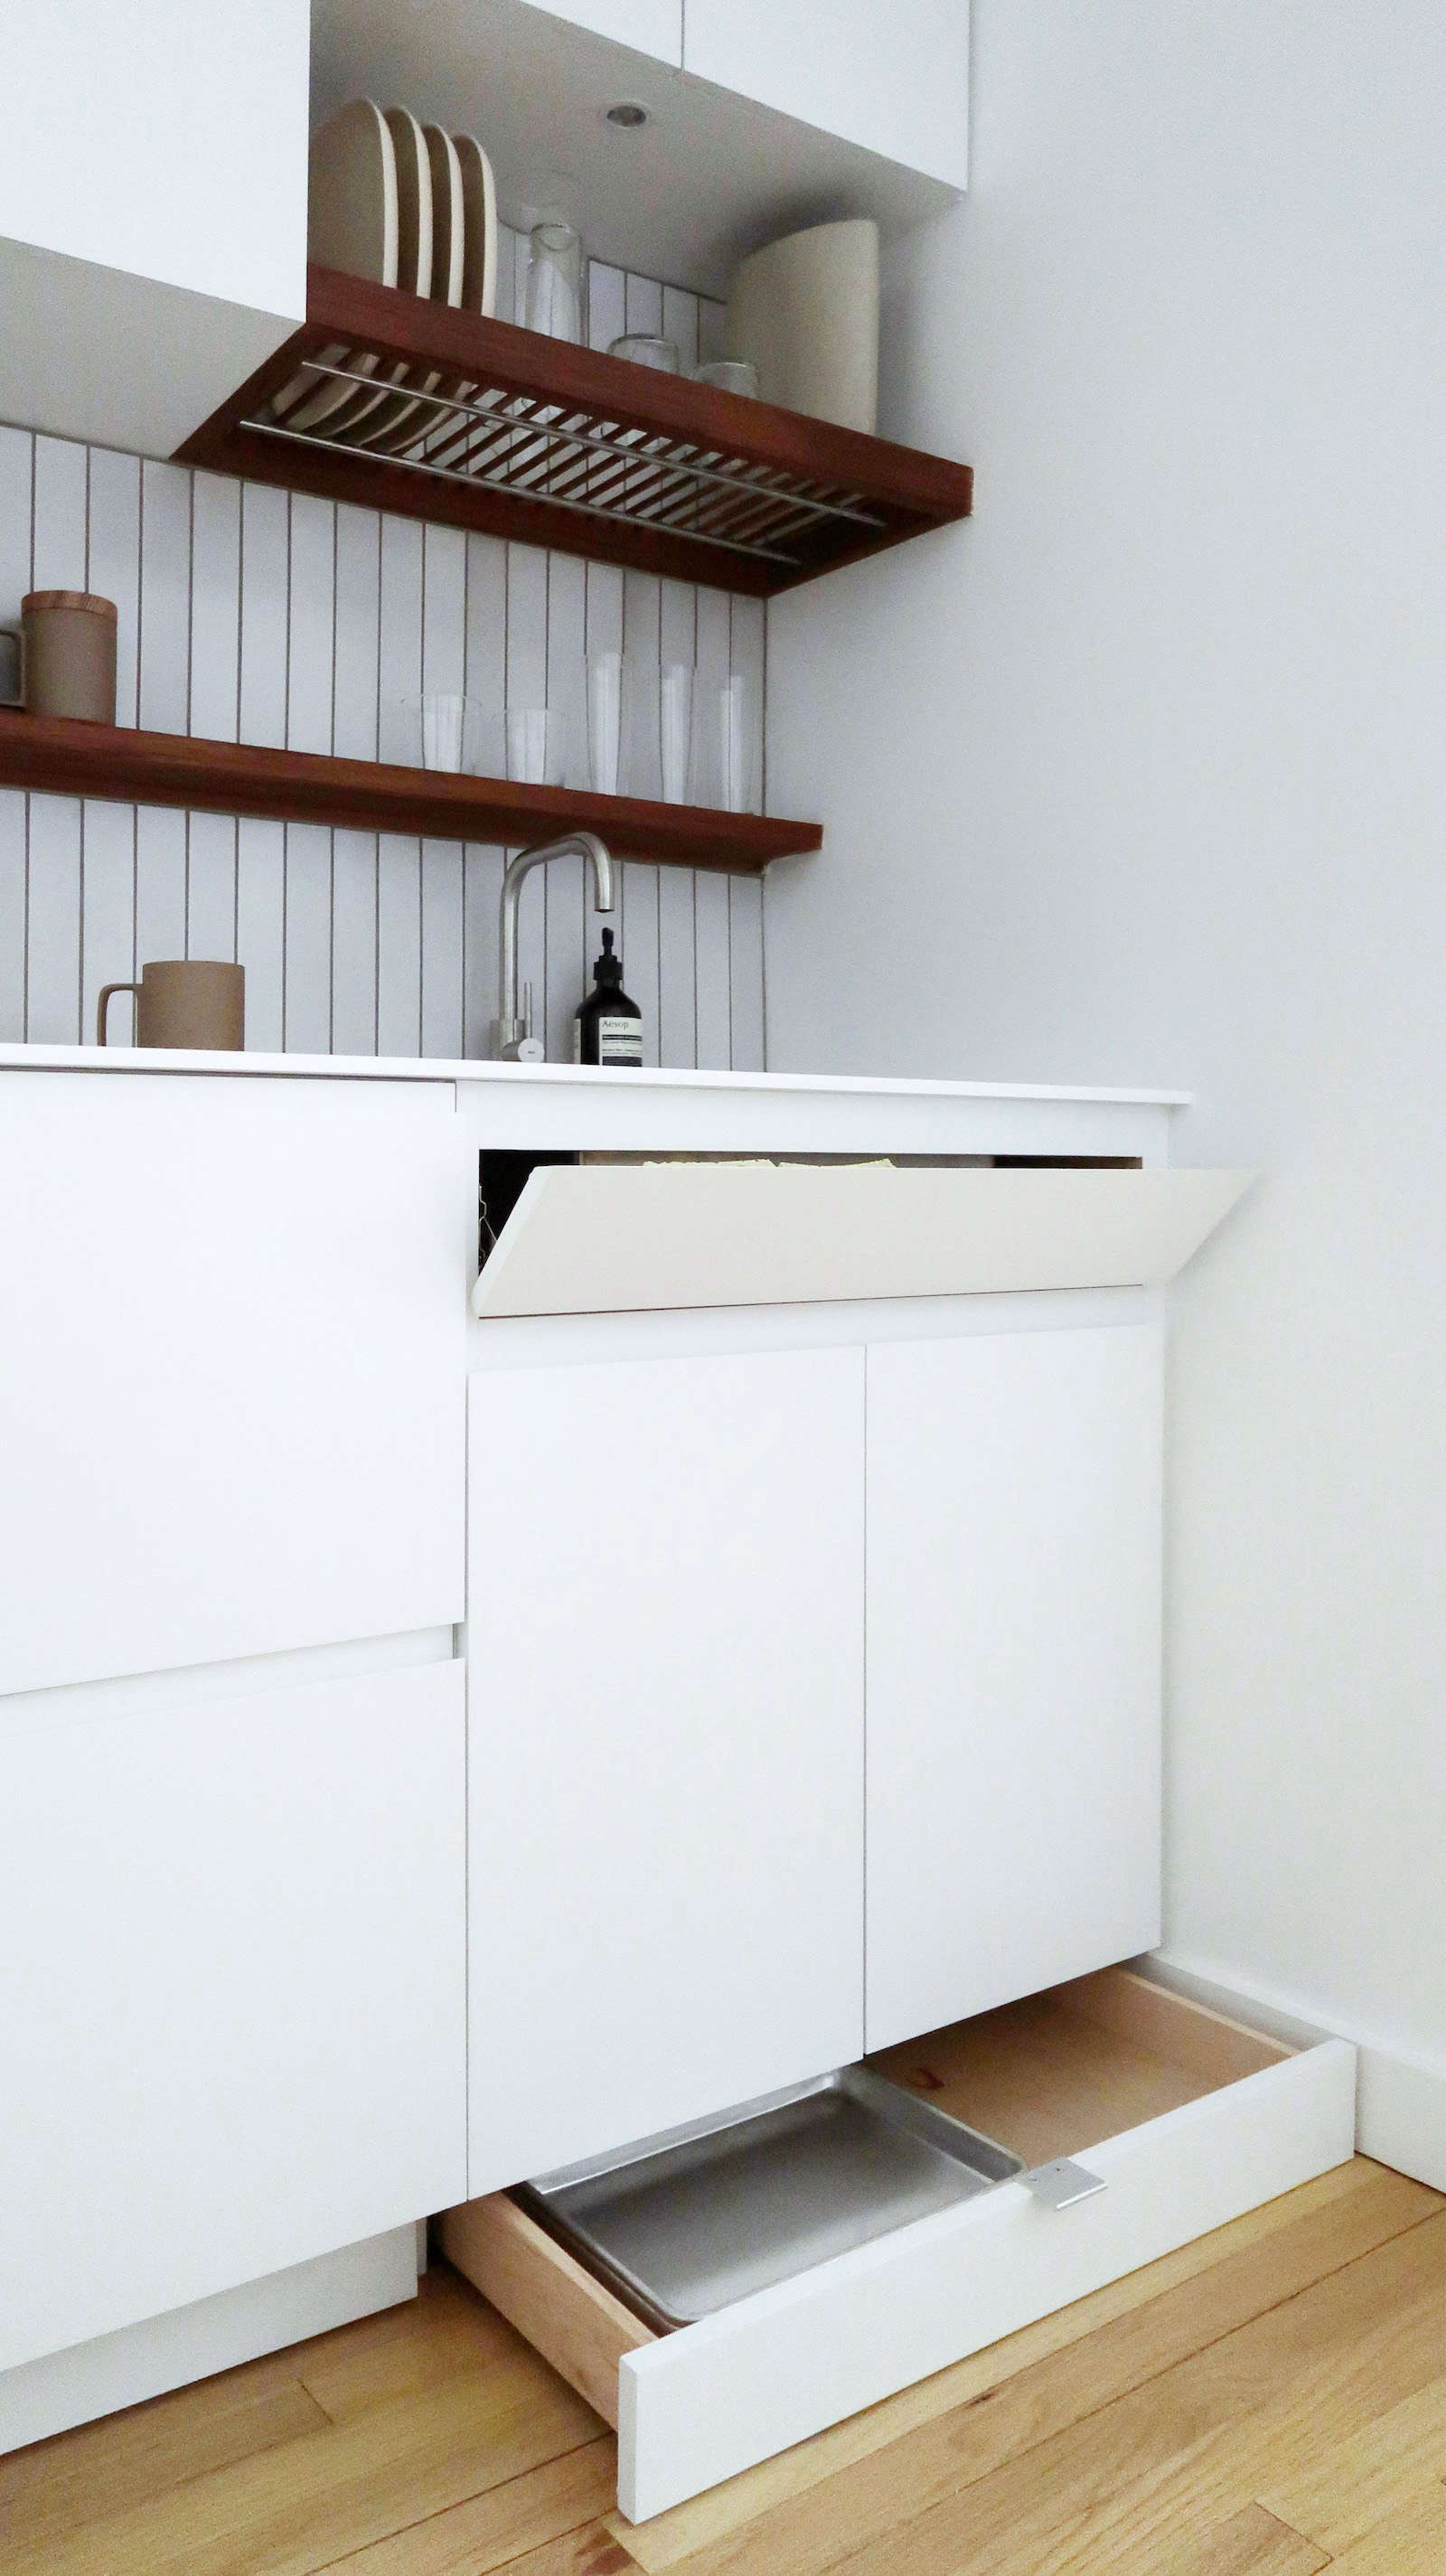 """The cabinet fronts are flat MDF panels with a sprayed, white lacquer finish. The toe kick drawers have stainless steel edge pulls (""""because they are basically invisible""""), and the cabinets have recessed bevels that serve as pulls."""